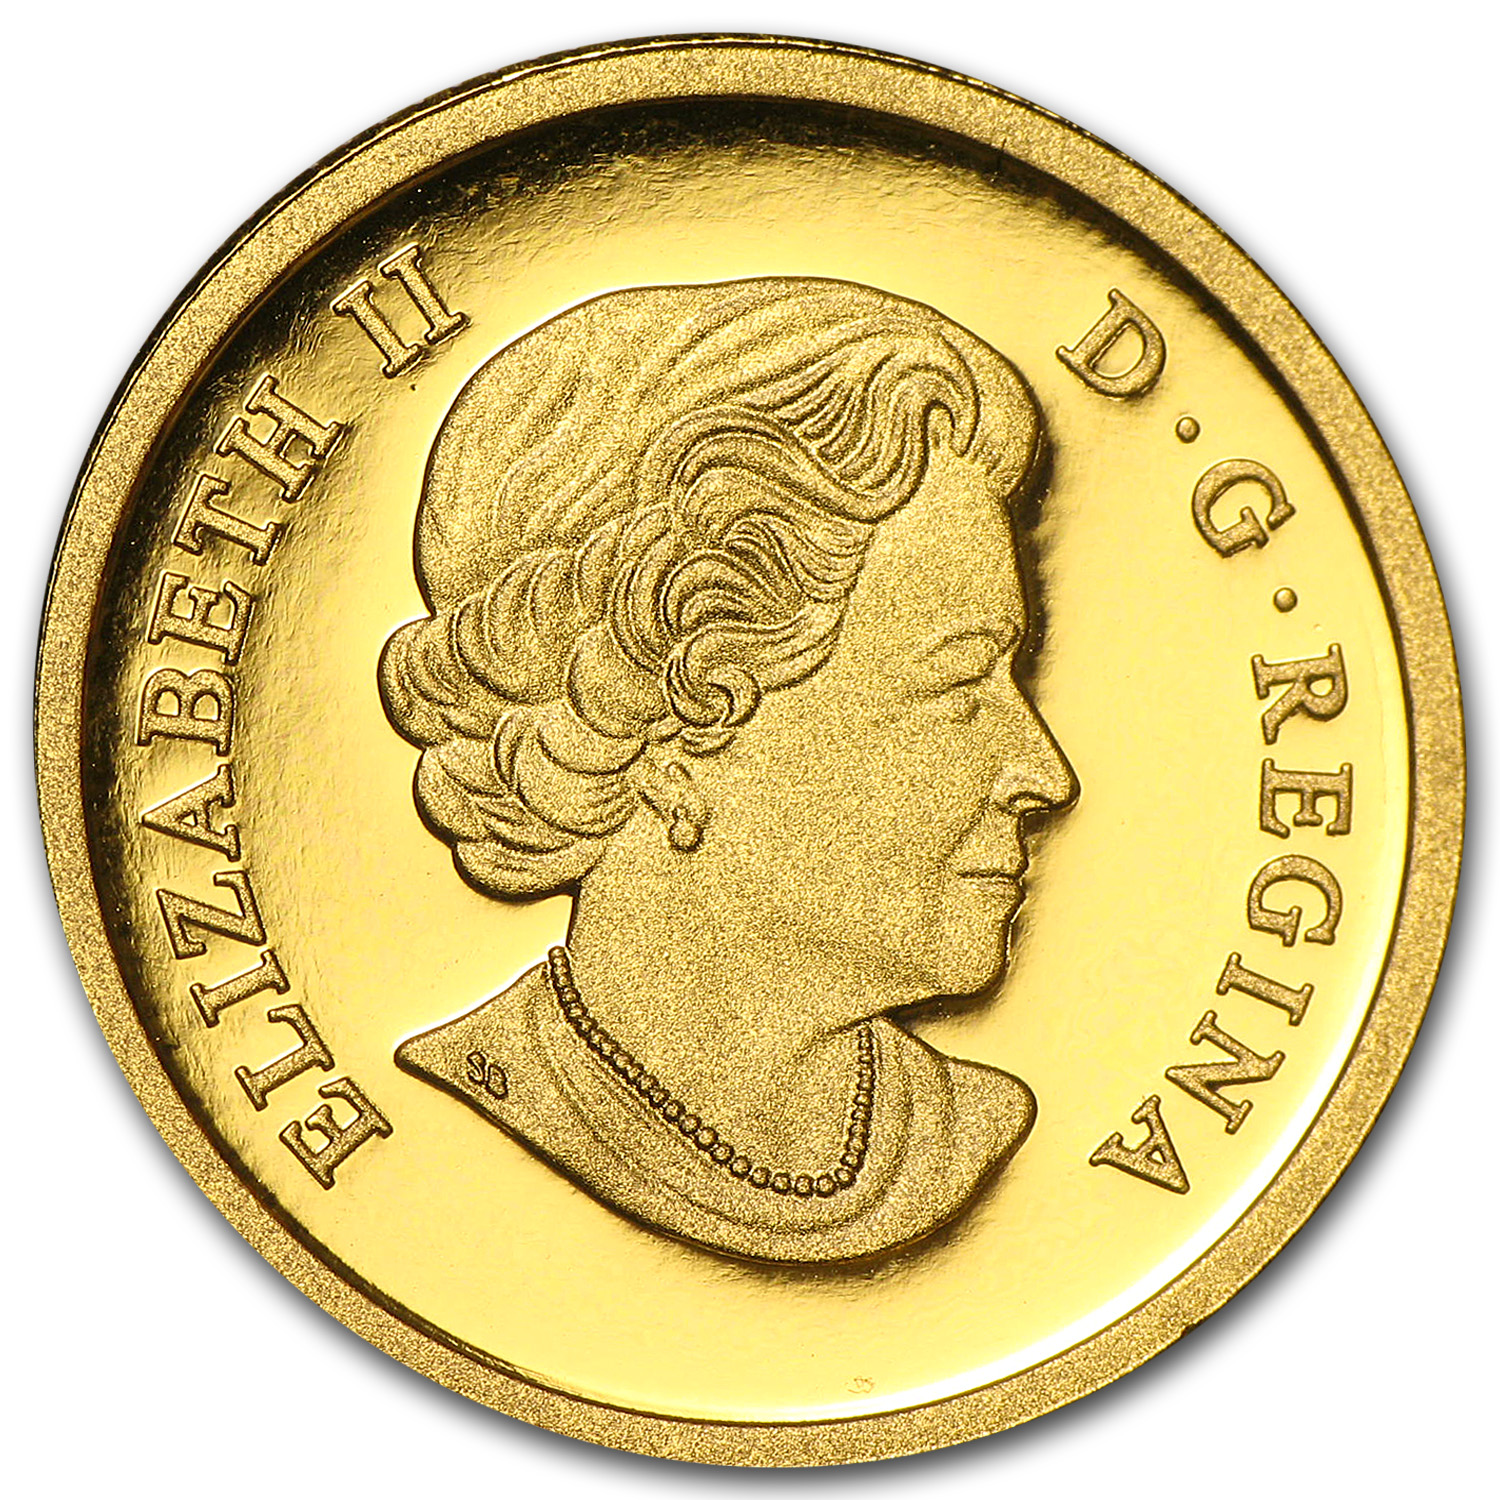 2013 1/4 oz Gold Canadian $25 Coin - An Allegory